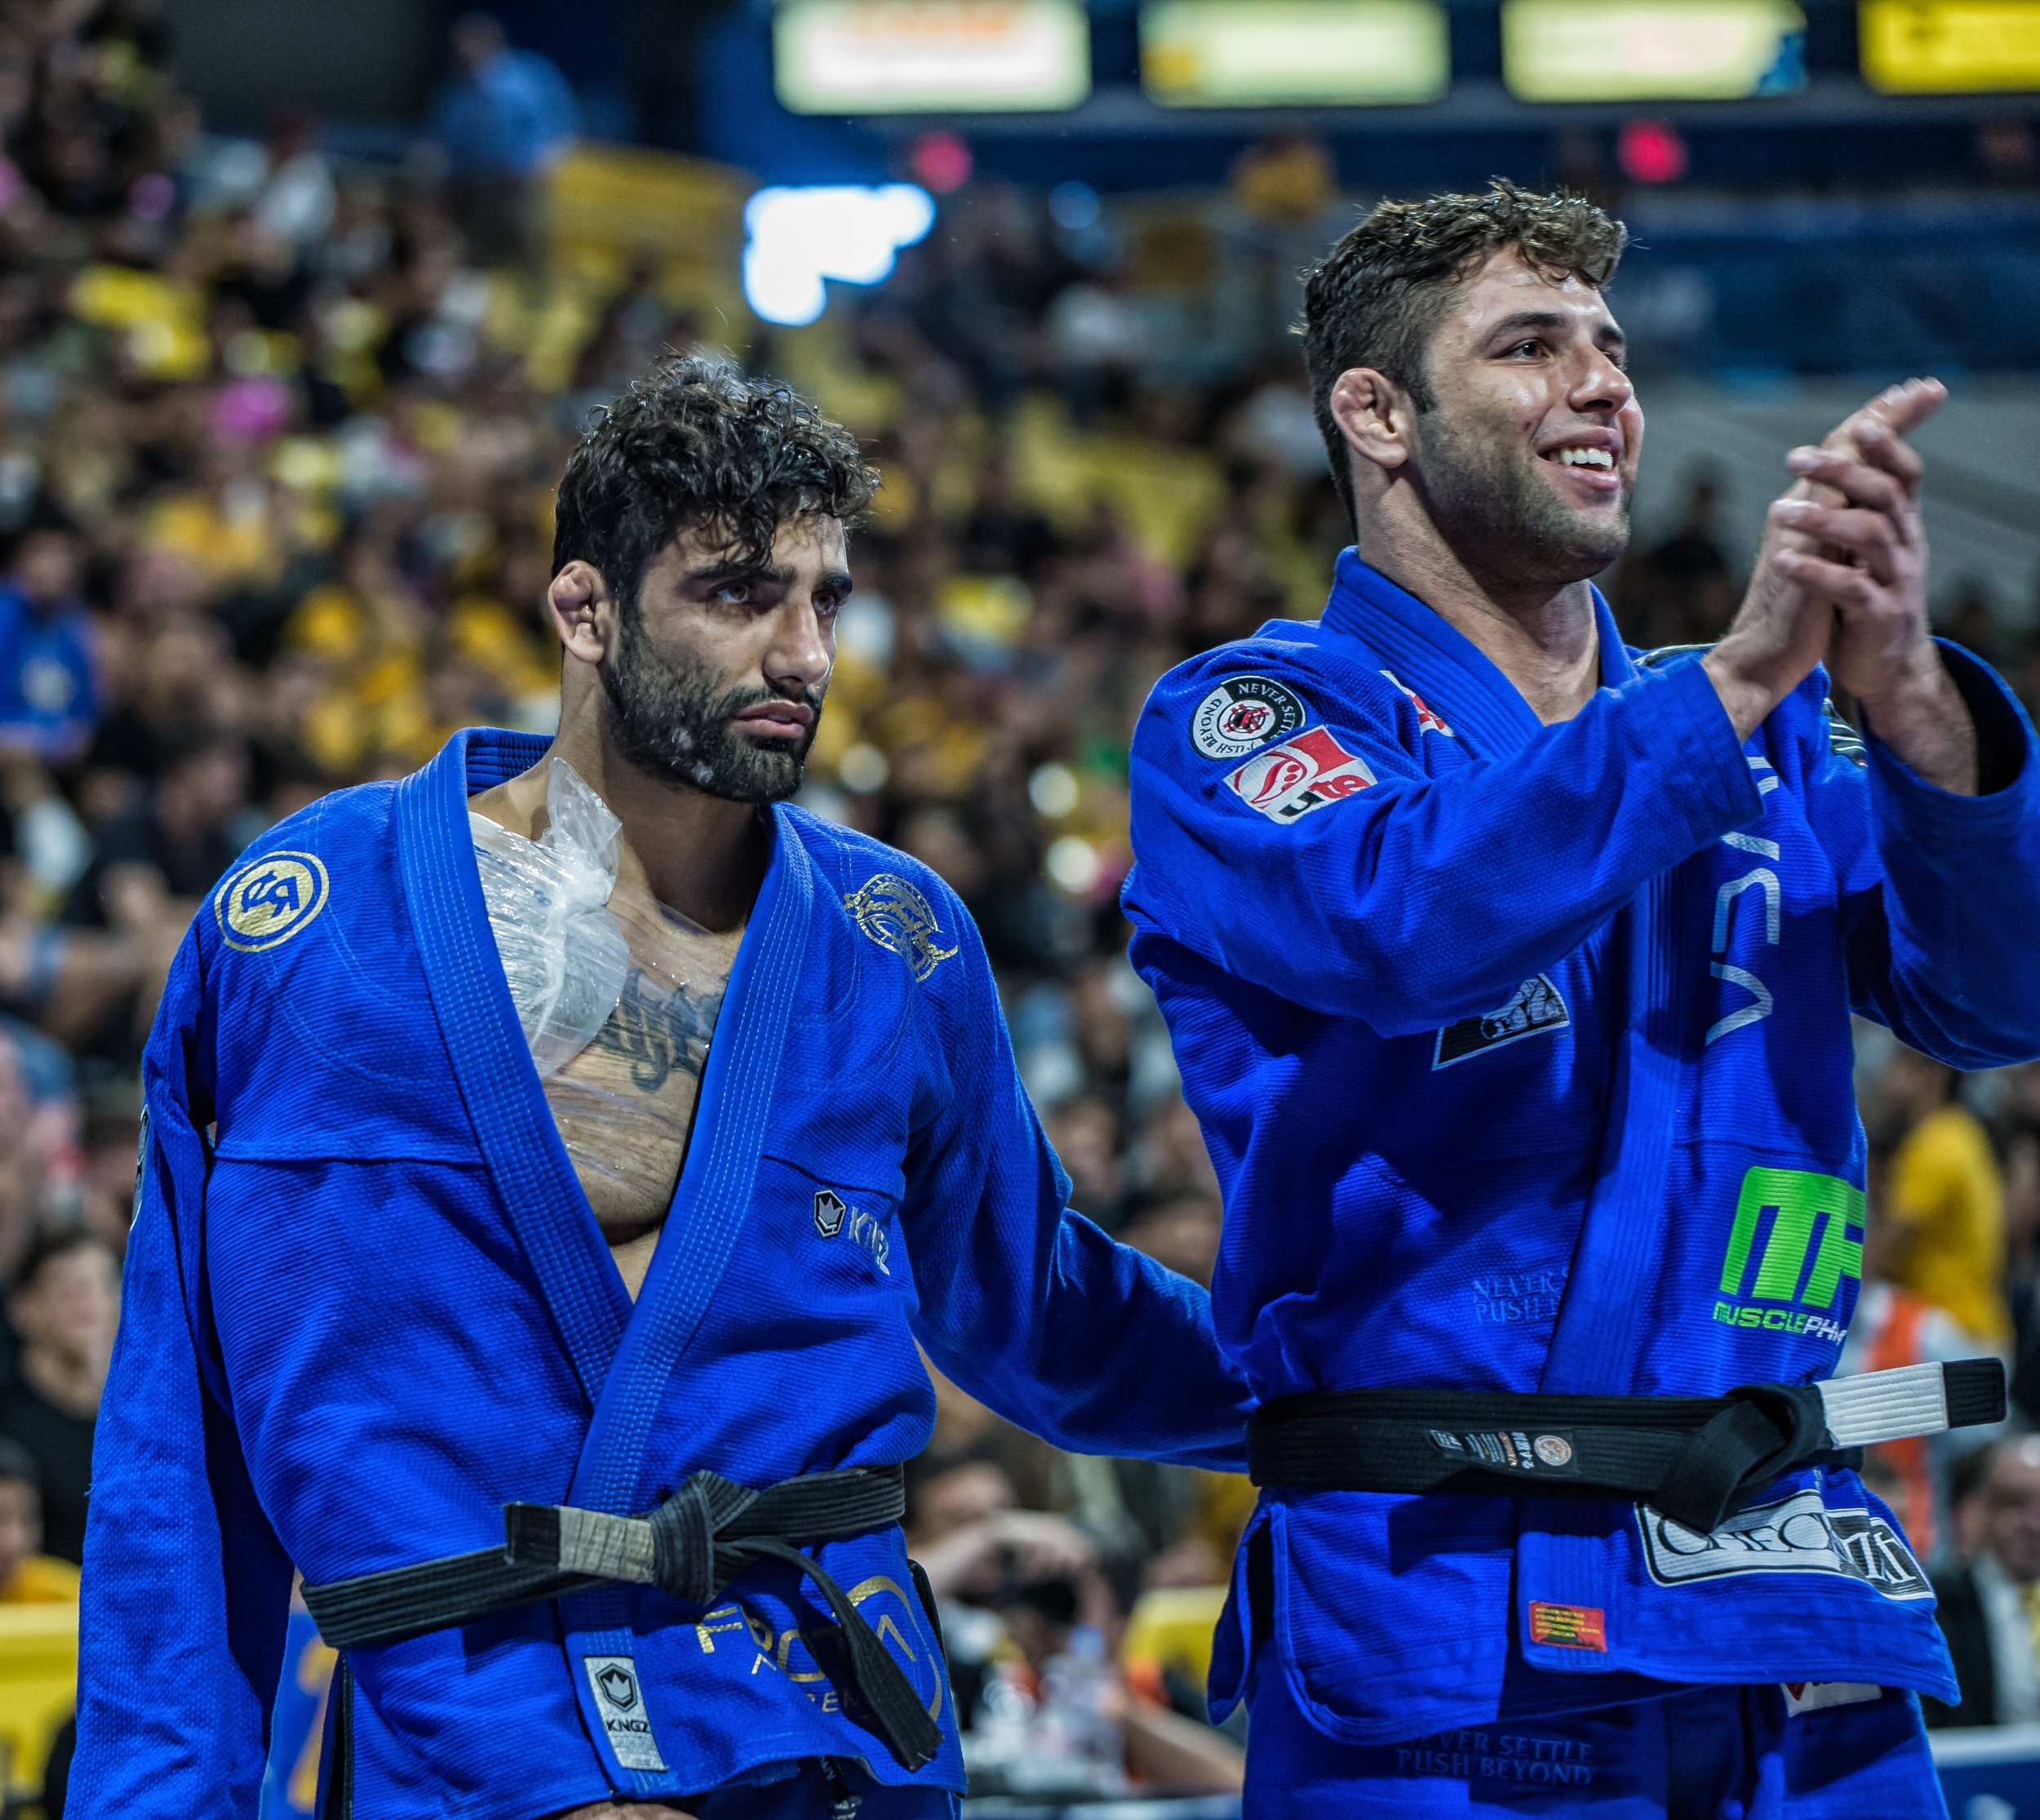 "This photo is immediately after Marcus ""Buchecha"" Almeida bequeathed his 6th Absolute Gold Medal to his friend, Leandro Lo, who was injured during his Super Heavy Finals match vs. Mahamed Aly. Lo was unable to compete for the Absolute Final, and Buchecha shocked the crowd, and Lo, when the referee raised Lo's hand to signal he would go home with the Absolute Gold."